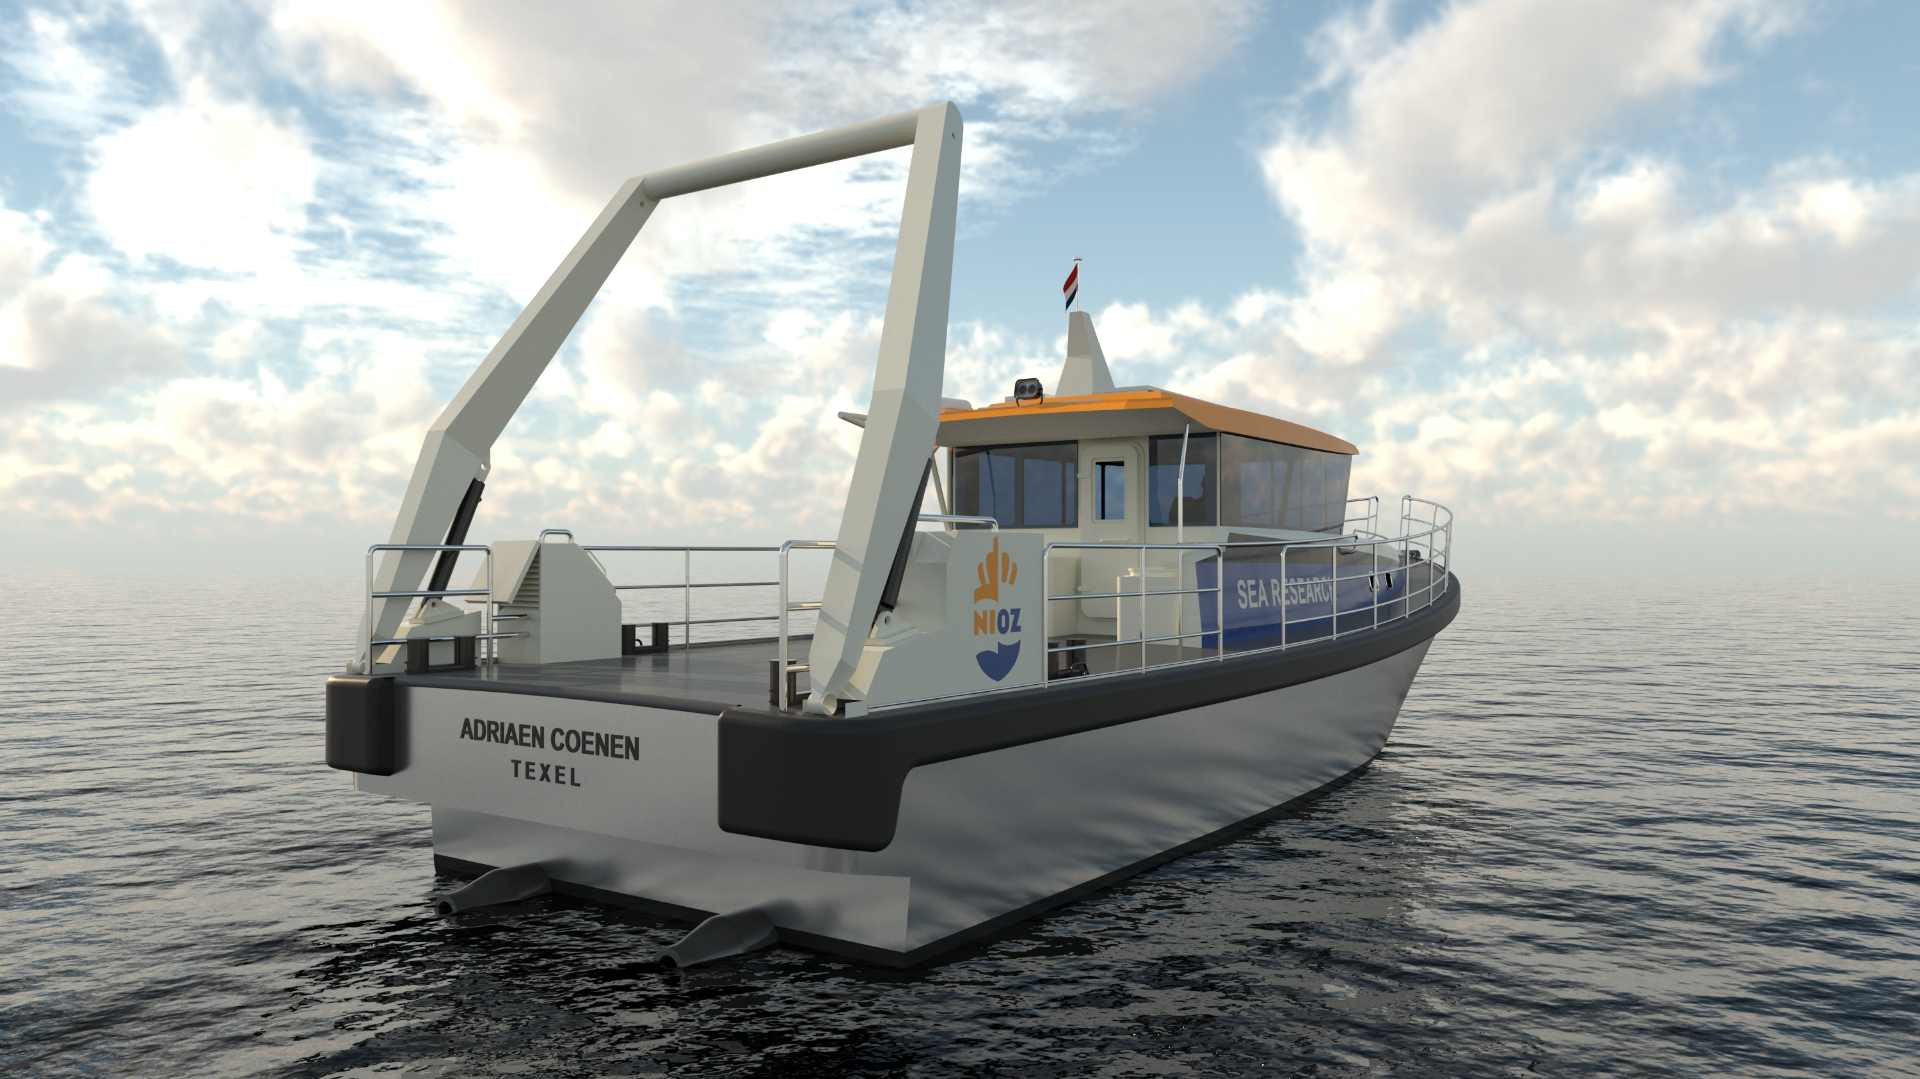 NIOZ and Next Generation Shipyards sign contract for research vessel Adriaen Coenen